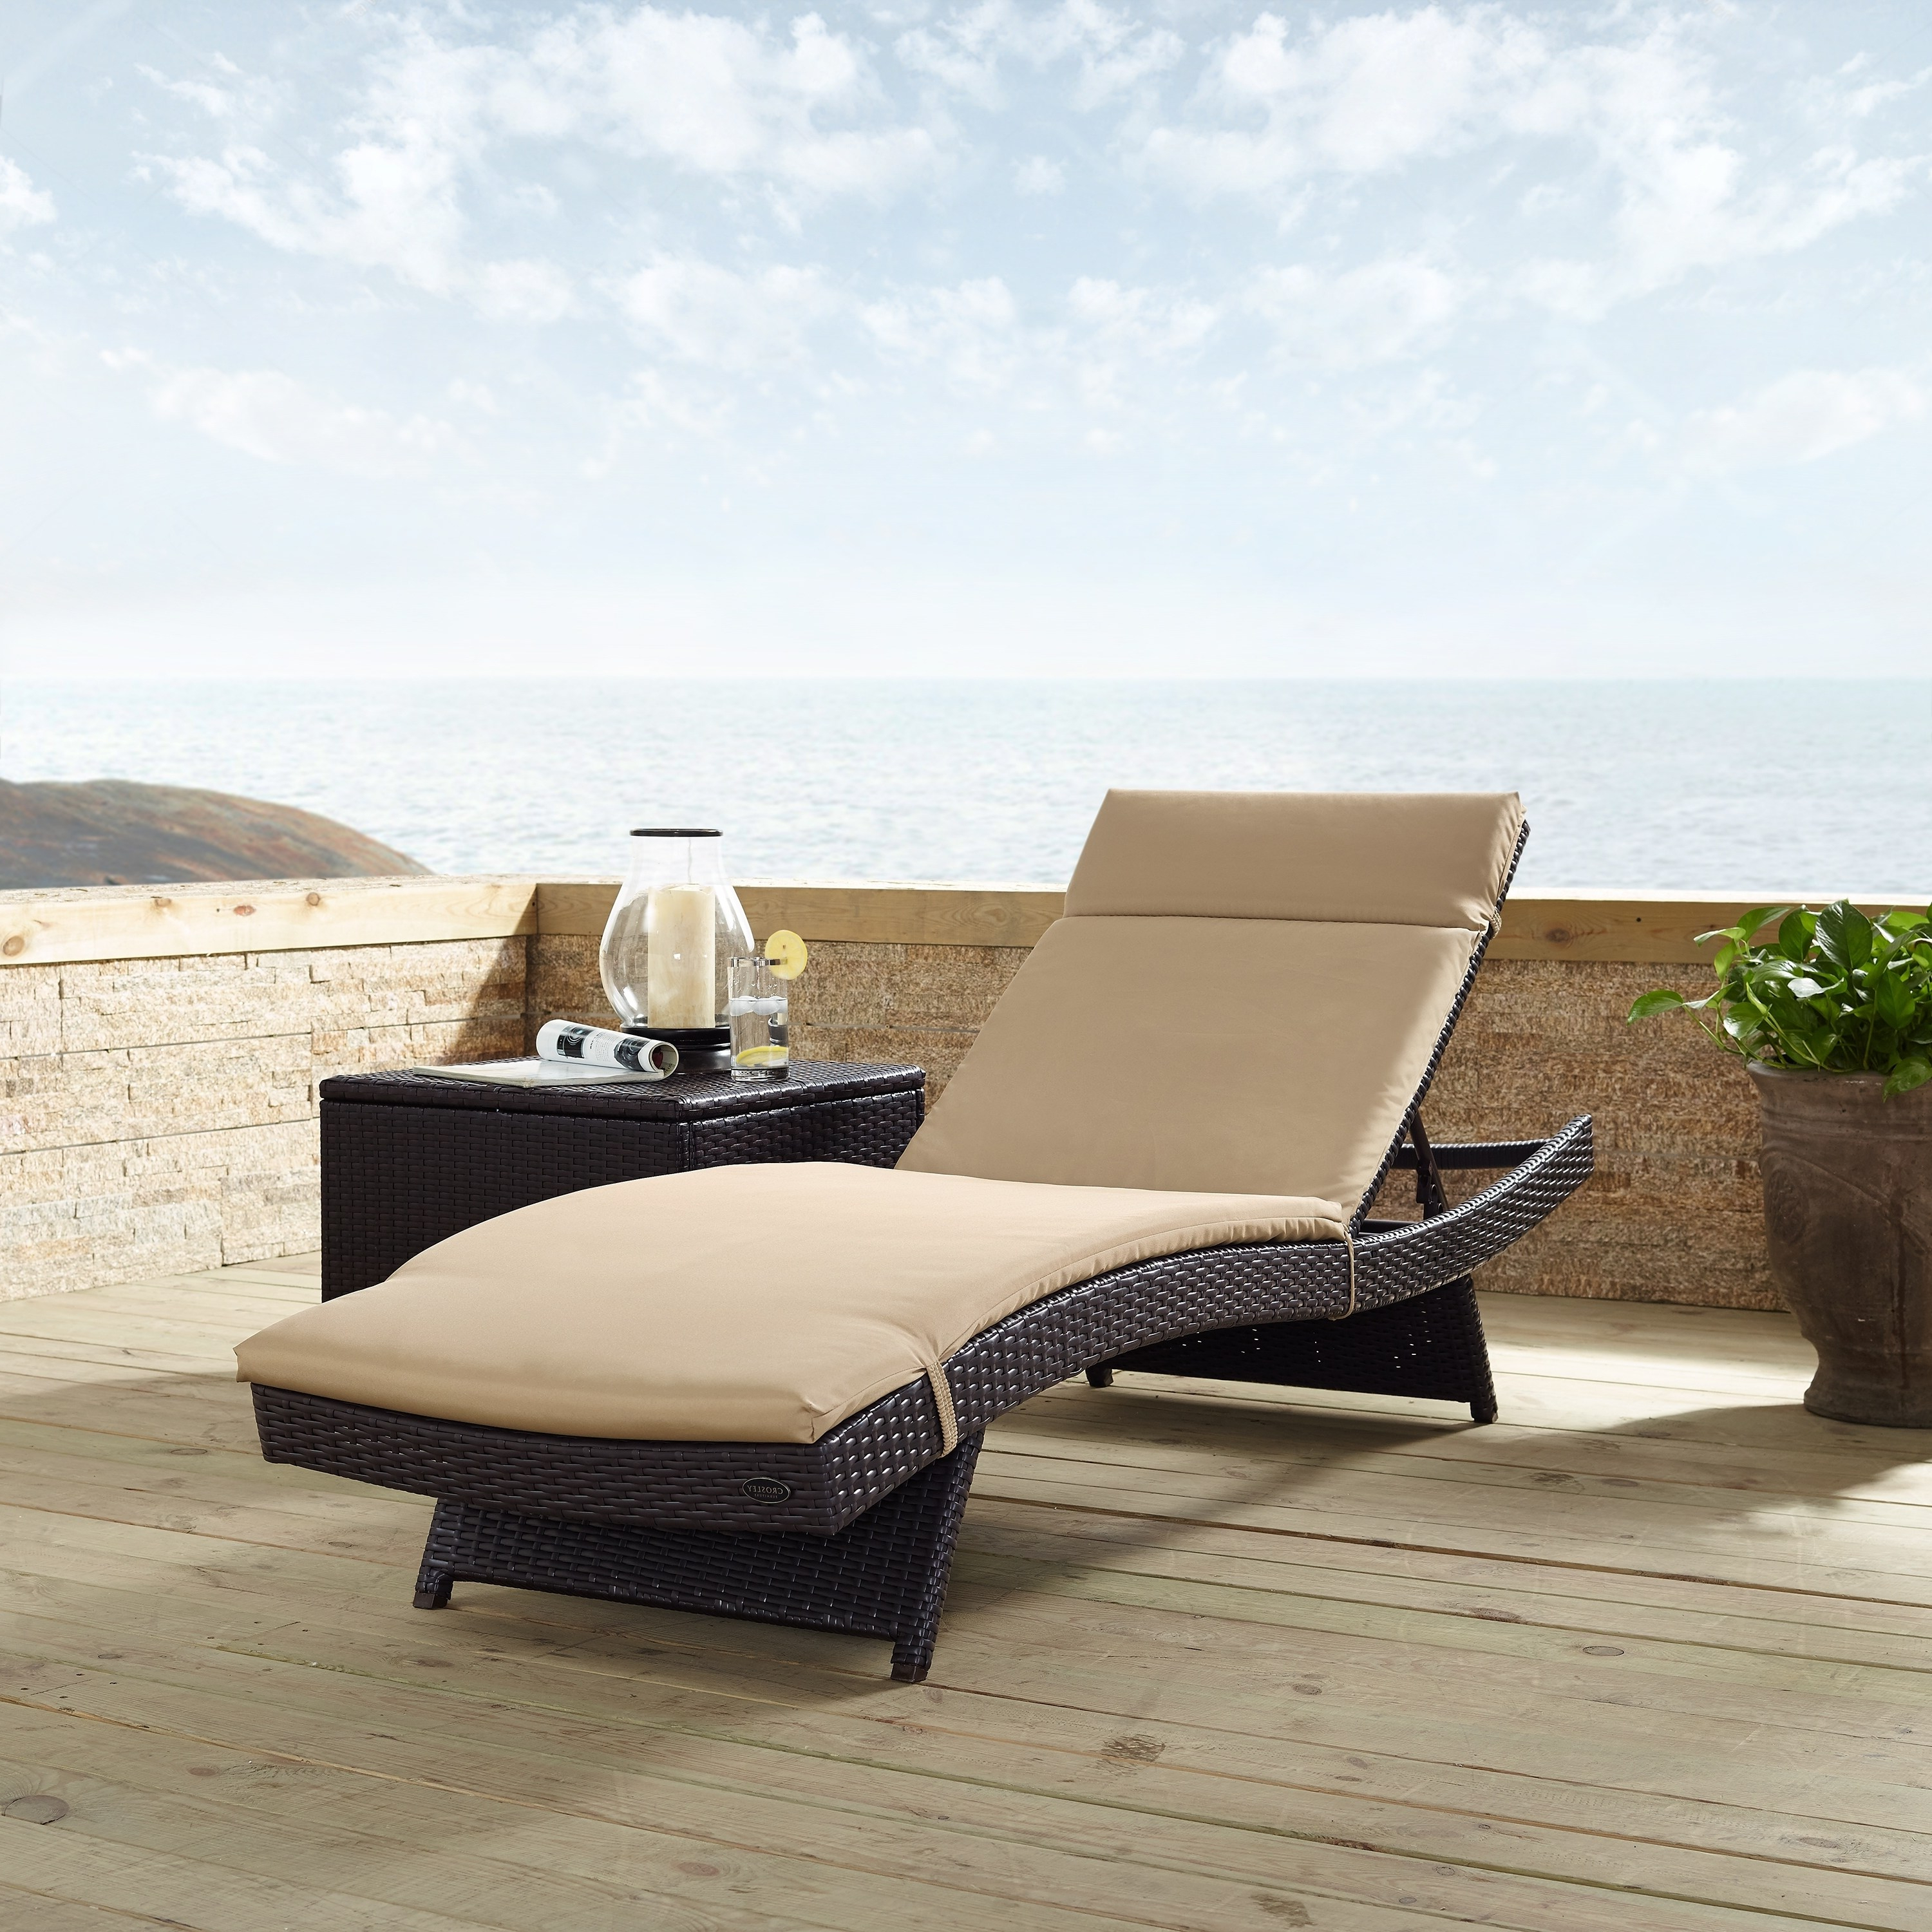 Biscayne Chaise Lounge With Mocha Cushion, Brown, Crosley Regarding Newest Outdoor Rustic Acacia Wood Chaise Lounges With Wicker Seats (View 4 of 25)